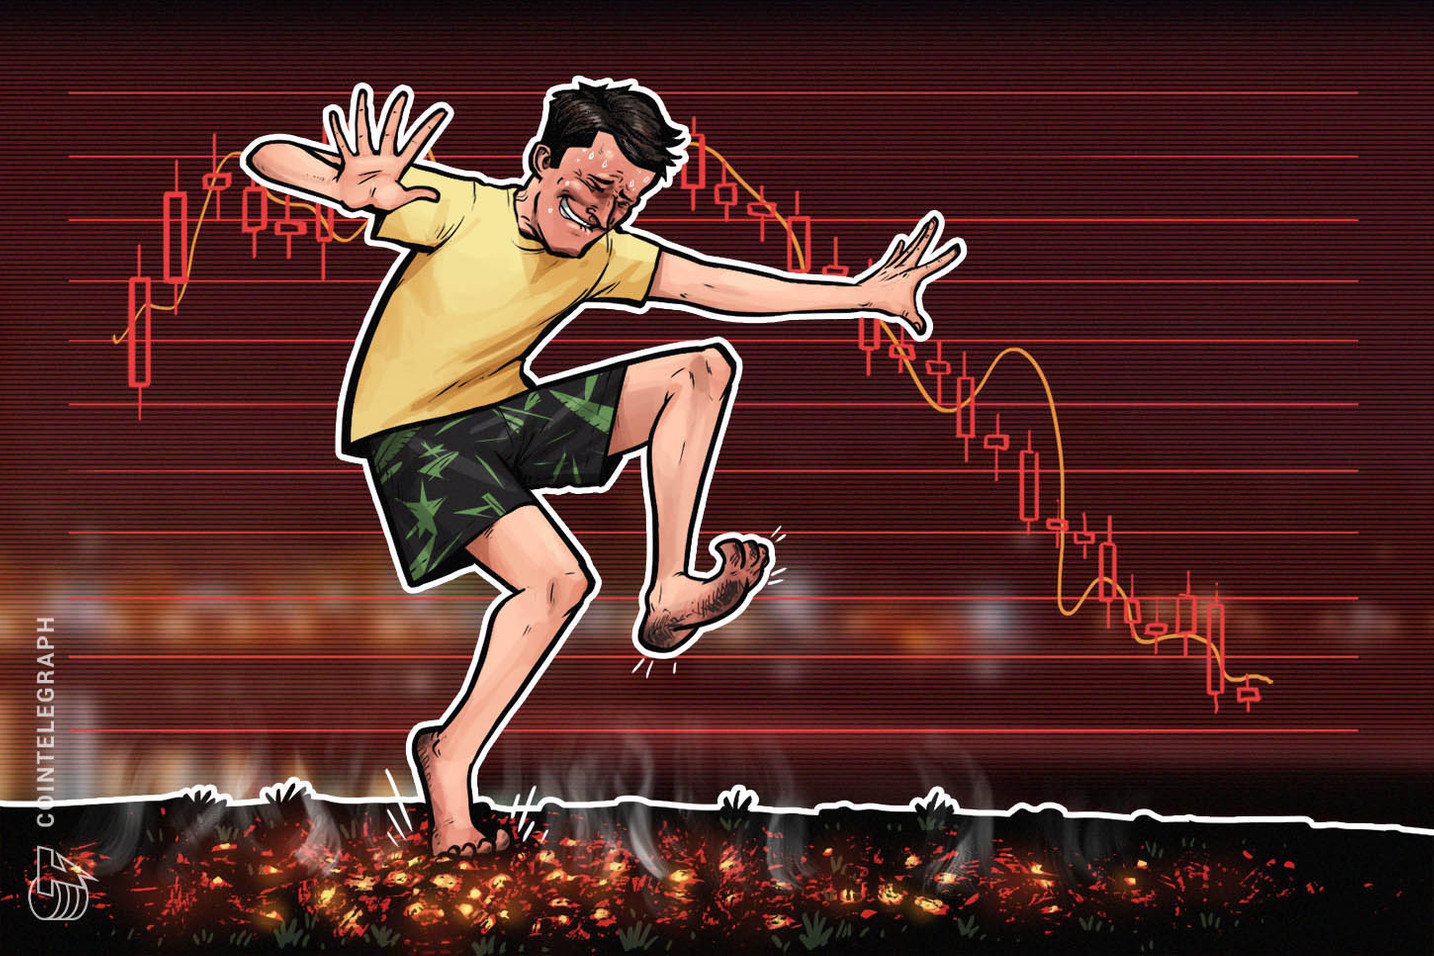 Crypto Market In The Red, Bitcoin Falls Below $8,000, Ethereum Dips Below $500